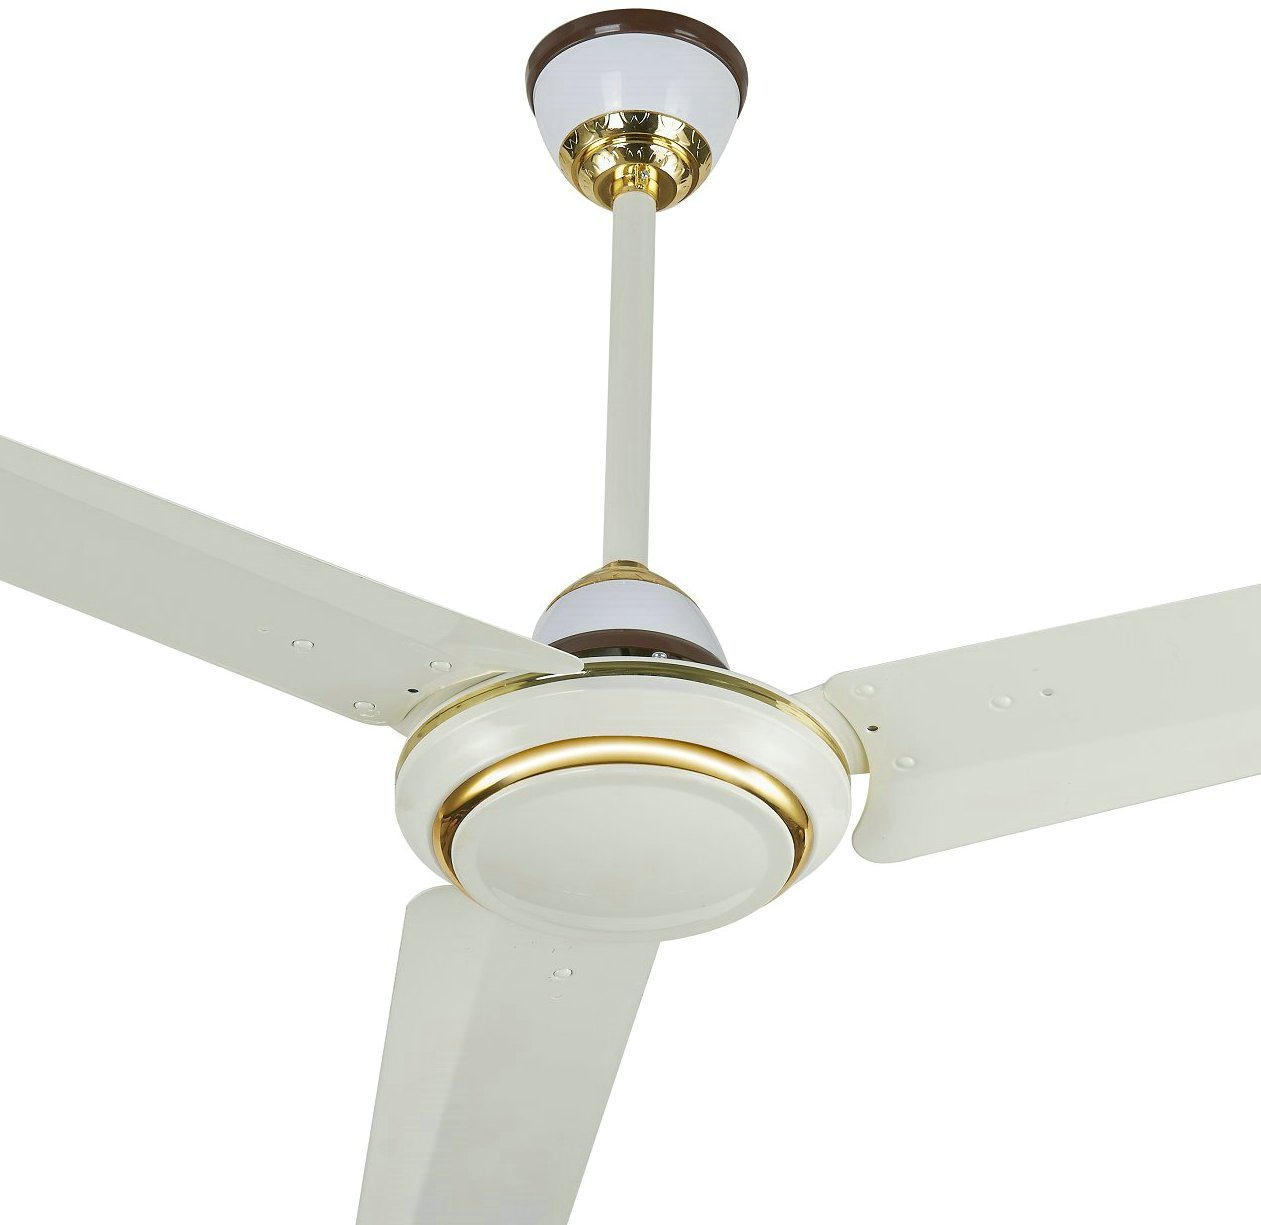 China dc 12v input solar ceiling fan for middle east market china china dc 12v input solar ceiling fan for middle east market china dc ceiling fan ceiling fan aloadofball Choice Image